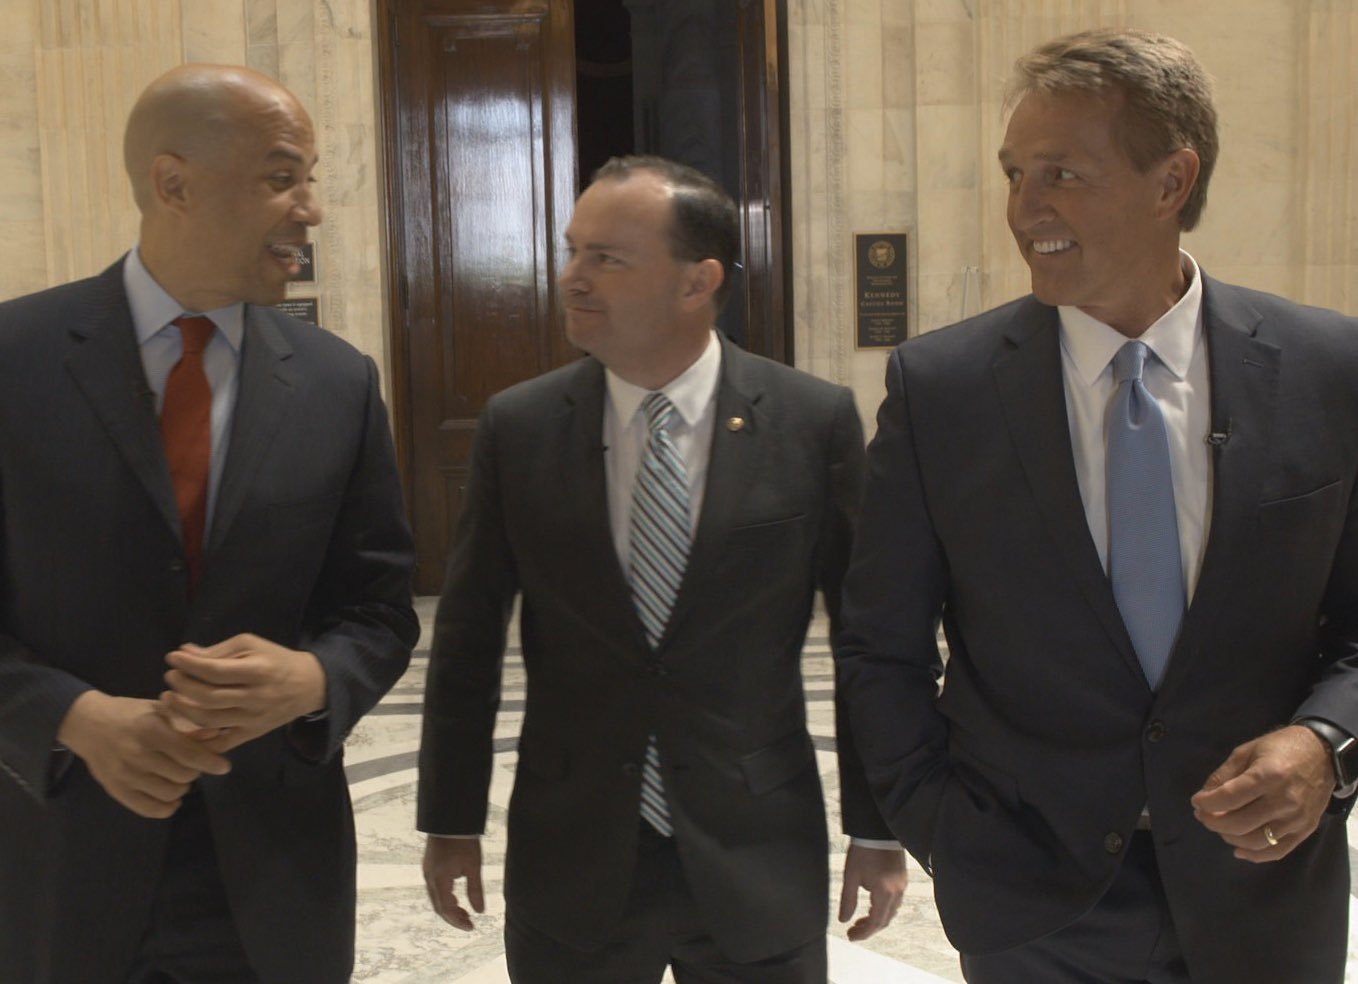 Jeff Flake: Can bipartisanship break out in this hyper-partisan era? Watch @CoryBooker and @SenMike...